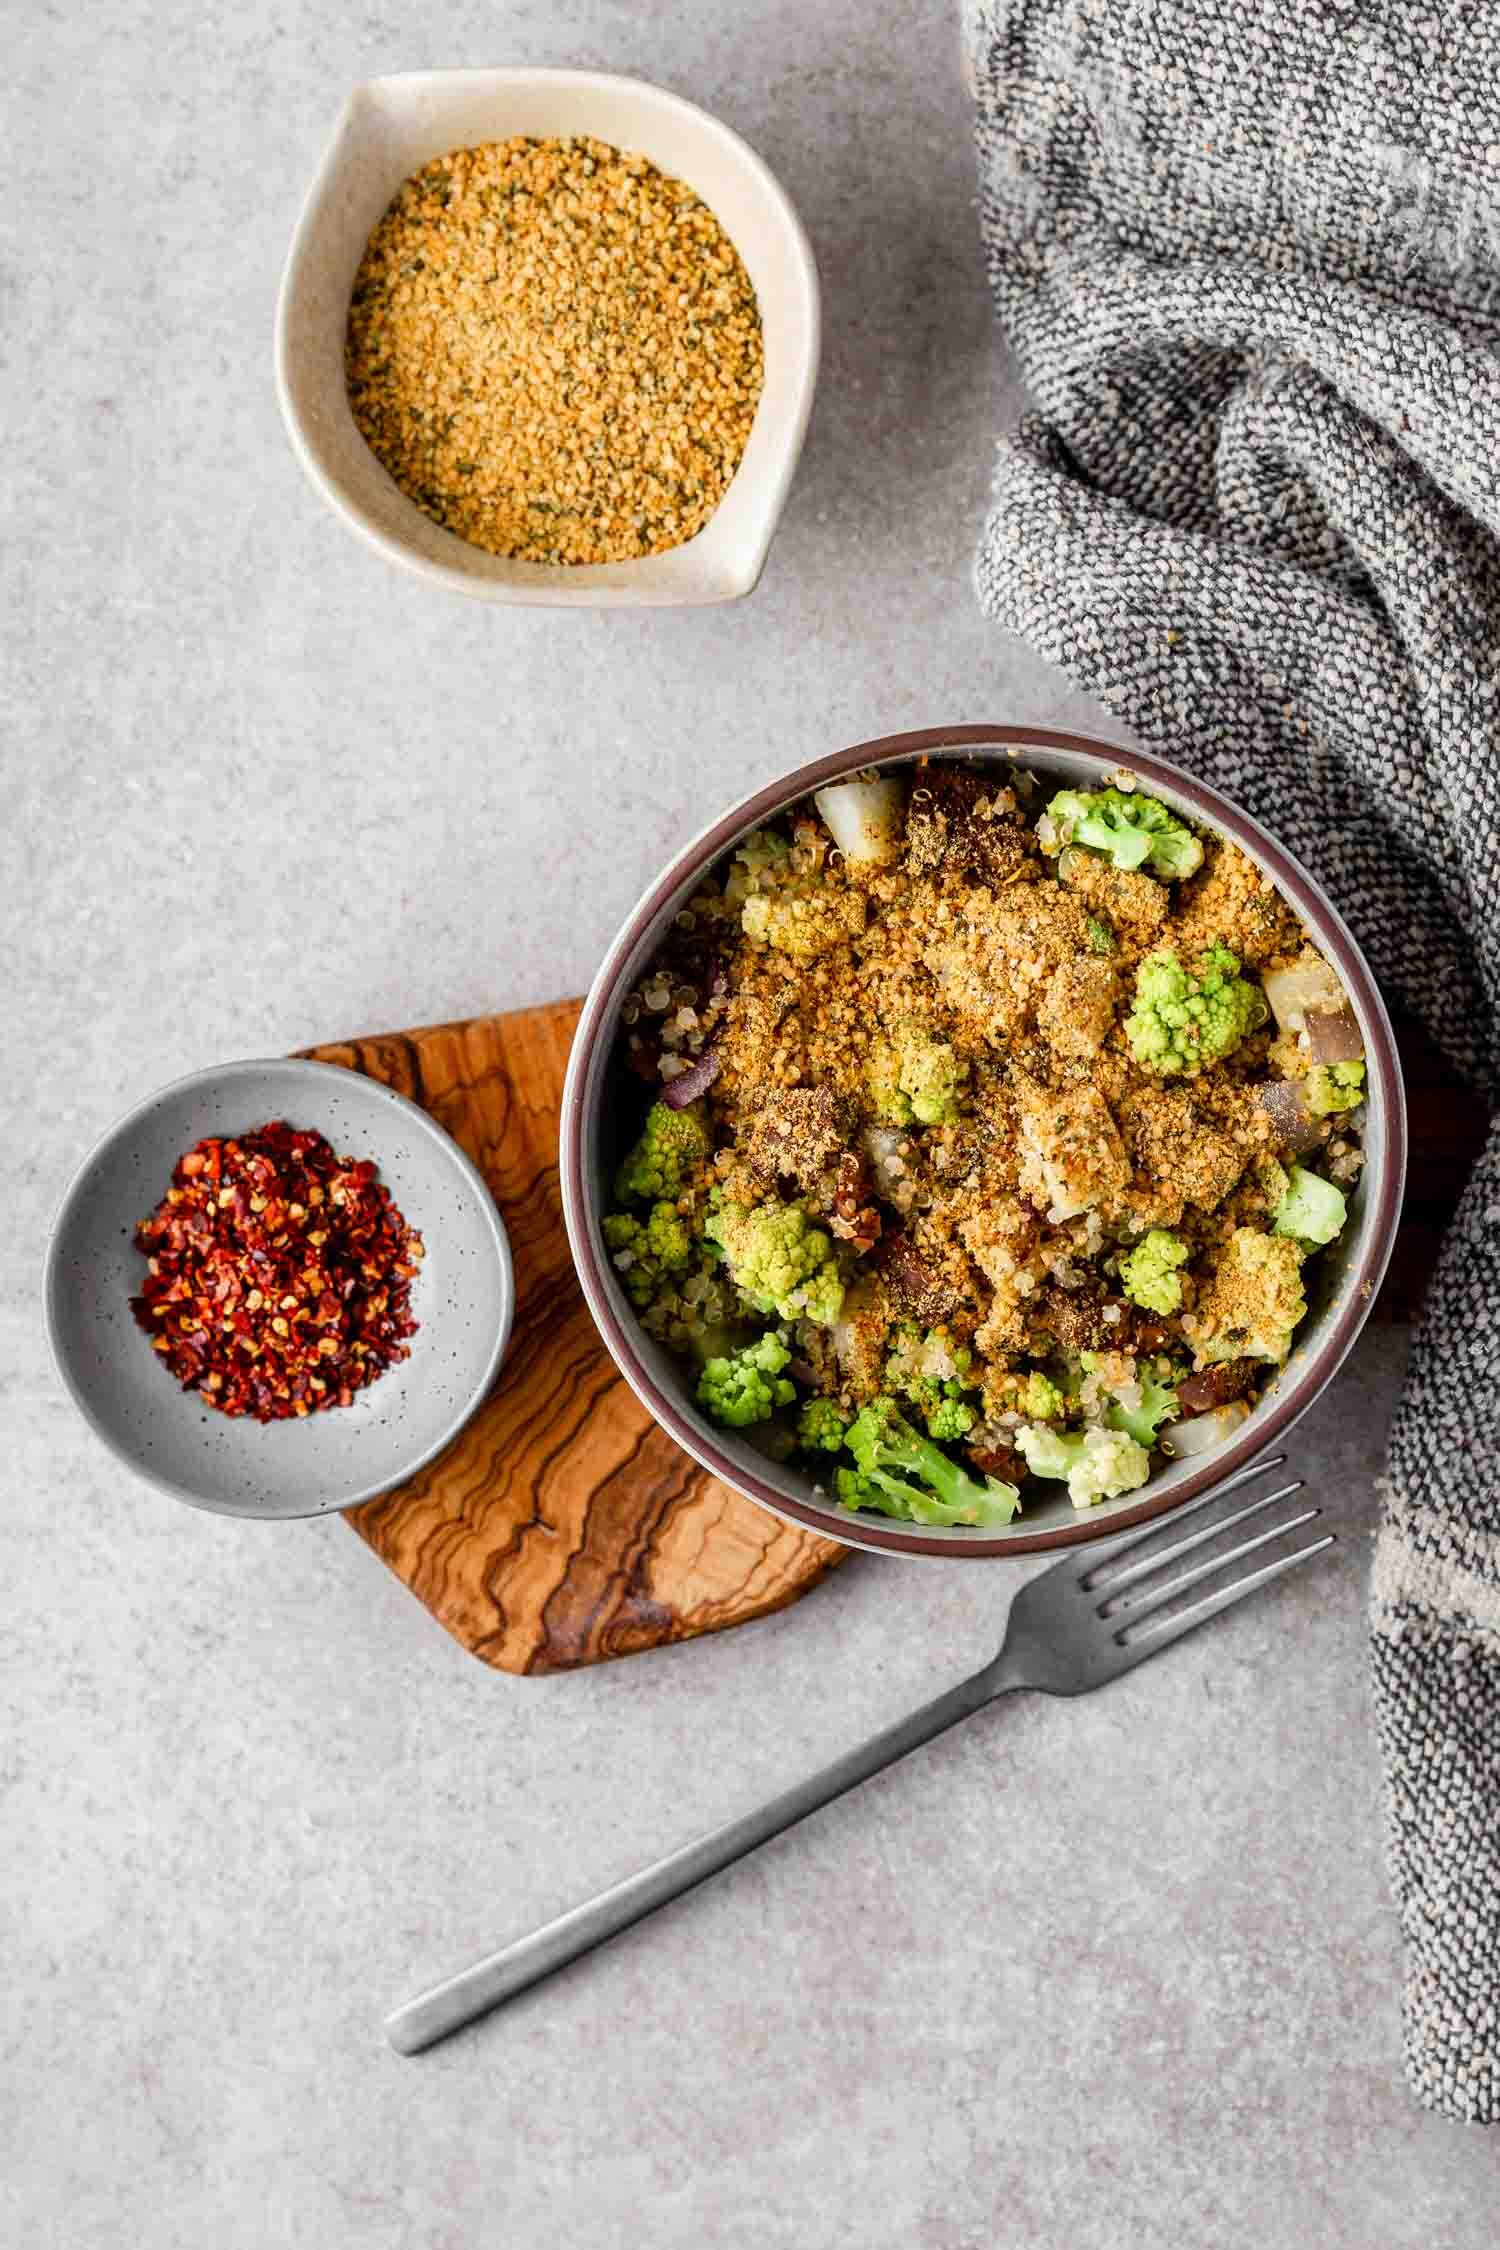 Smoky Hemp Heart Seasoning with nutritional yeast, which is optional. So good on just about anything, like this quinoa with sautéed romanesco and kohlrabi with tempeh and quinoa. #smoky #hempheart #hempseed #seasoning #topping #smokytopping #smokyseasoning #vegan #plantbased #veganrecipe #glutenfreevegan #flavoring #veganflavoring